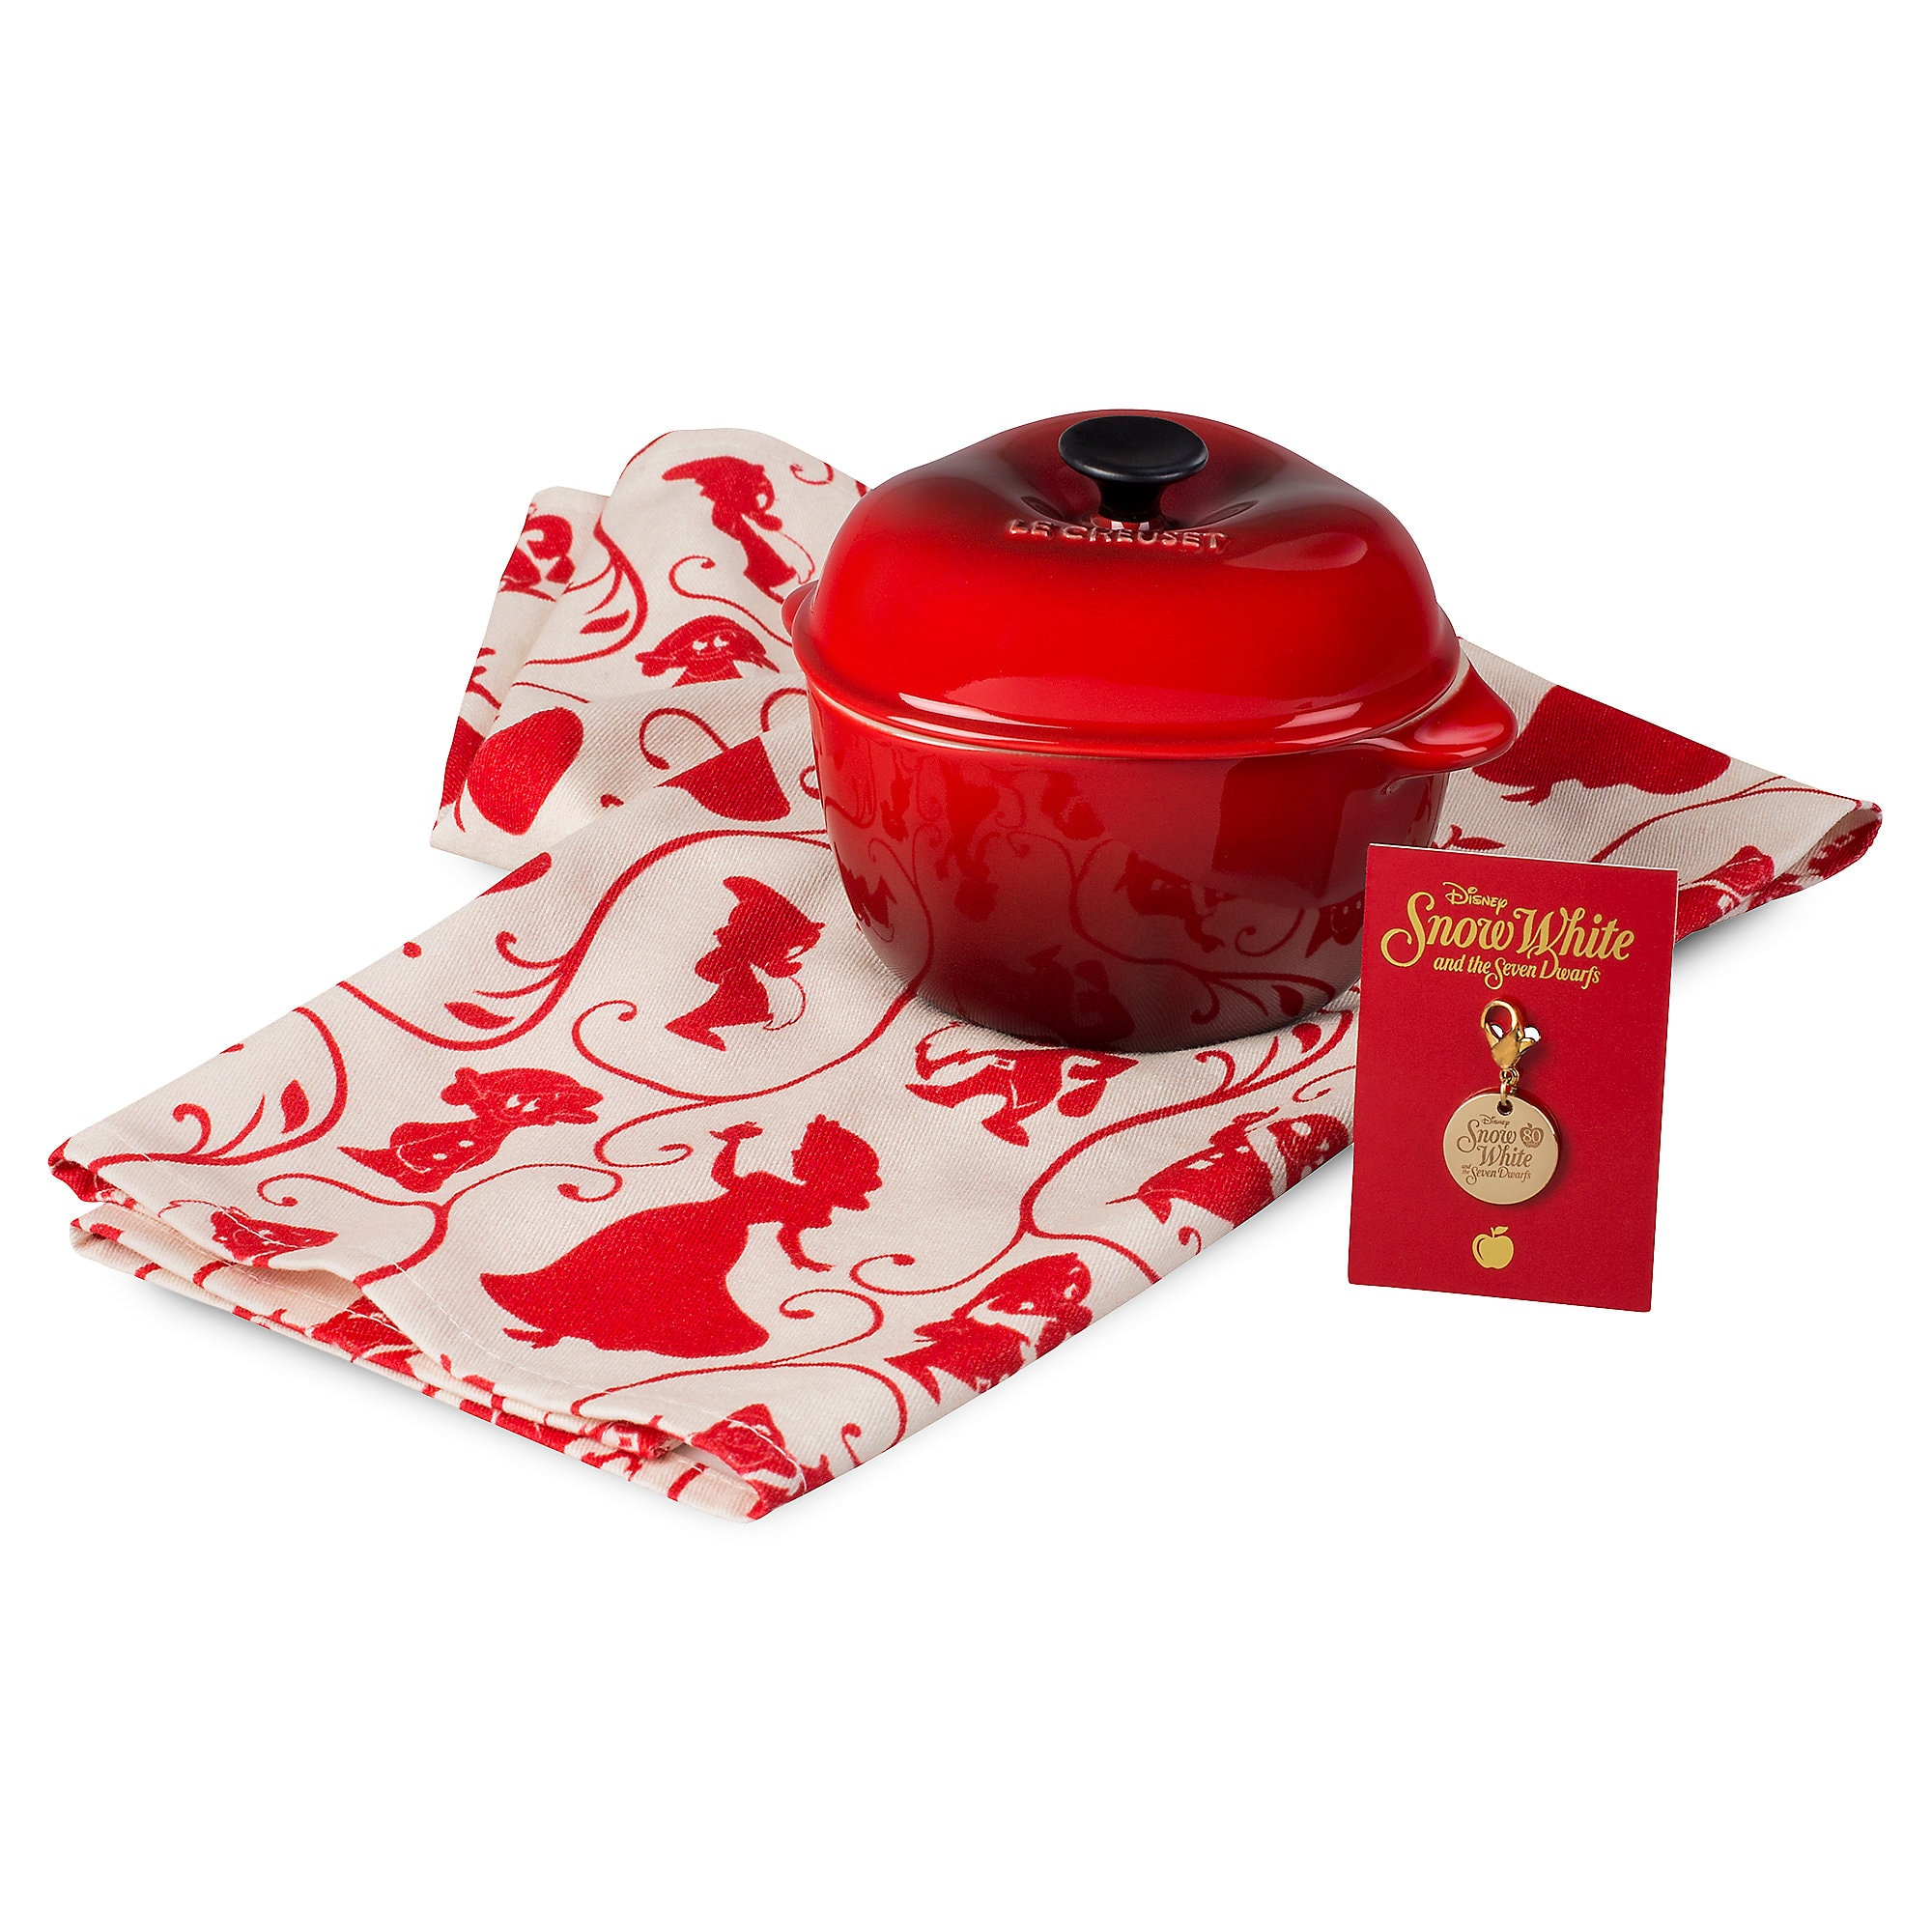 Snow White Apple Cocotte with Collector's Charm and Kitchen Towel Set by Le Creuset - Small